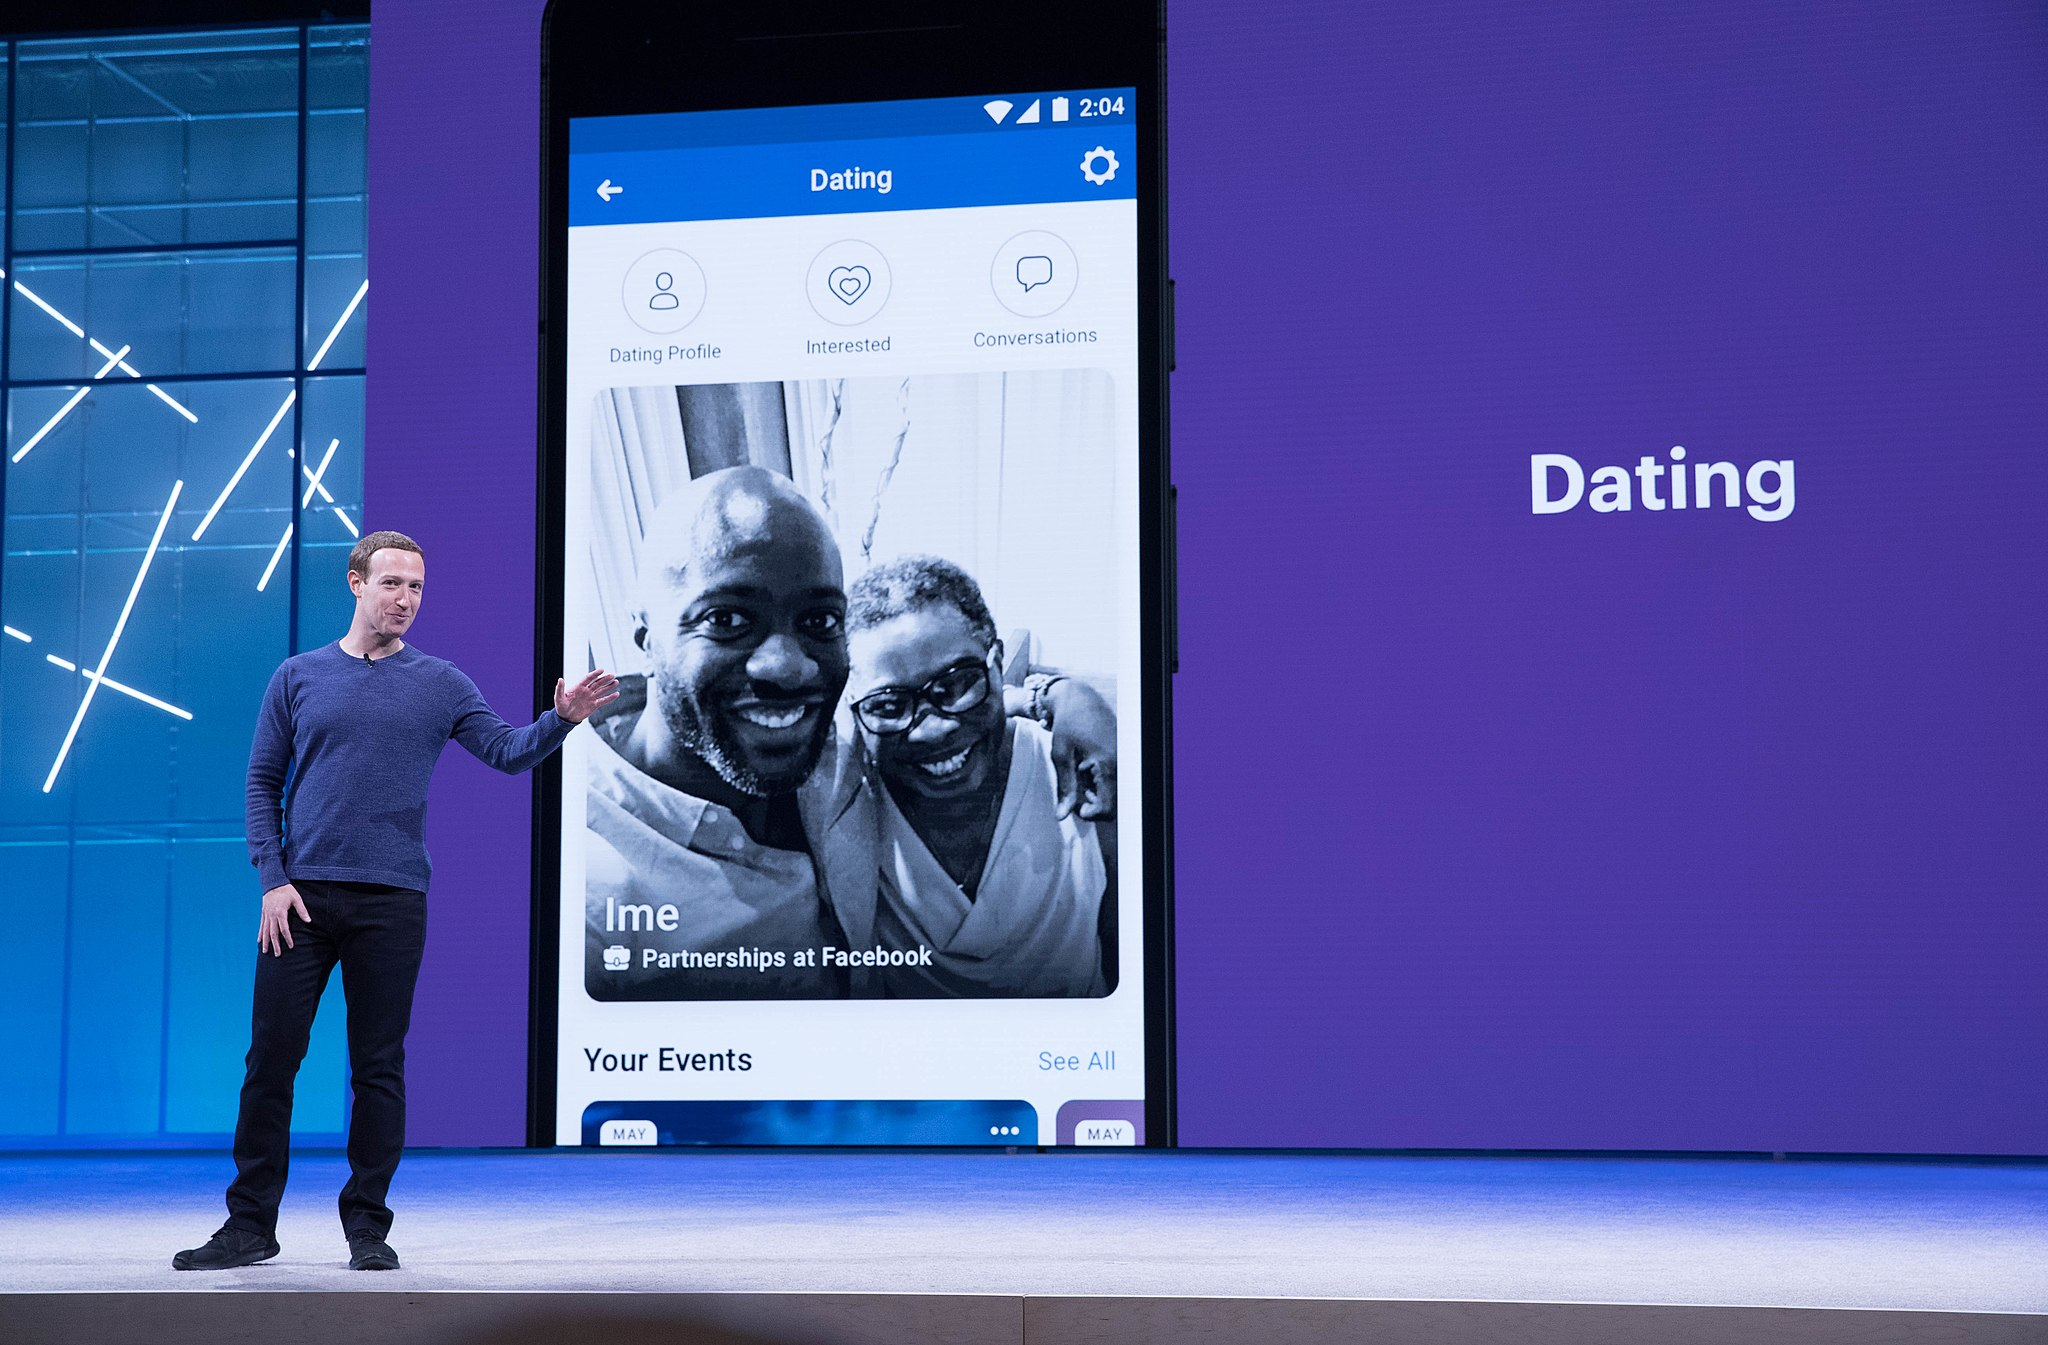 Mark Zuckerberg F8 2018 Keynote Facebook Dating (26967364537)